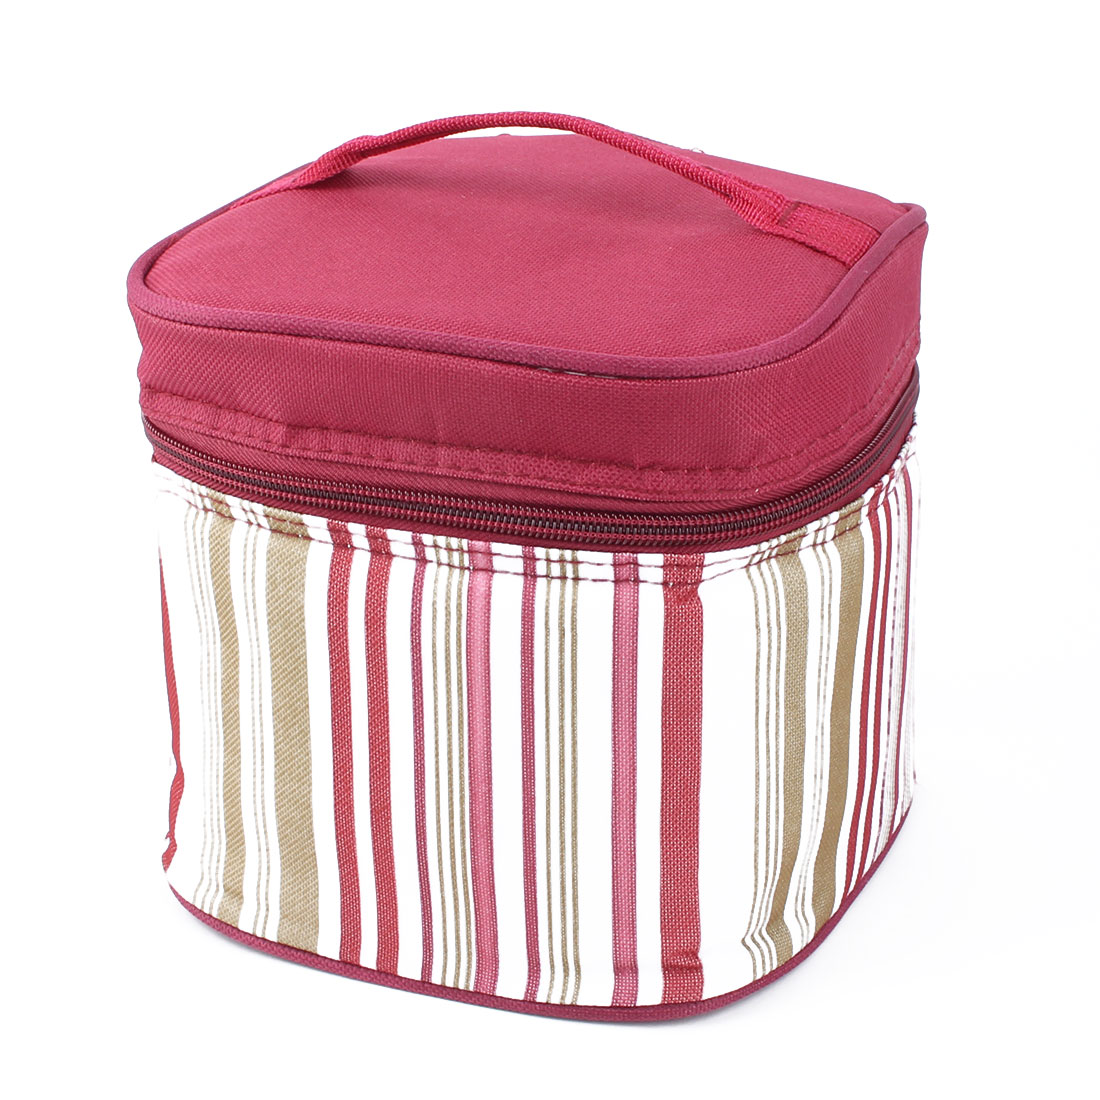 Outdoor Portable Stripes Design Lunch Box Cooler Storage Picnic Bag Tote Pouch Burgundy